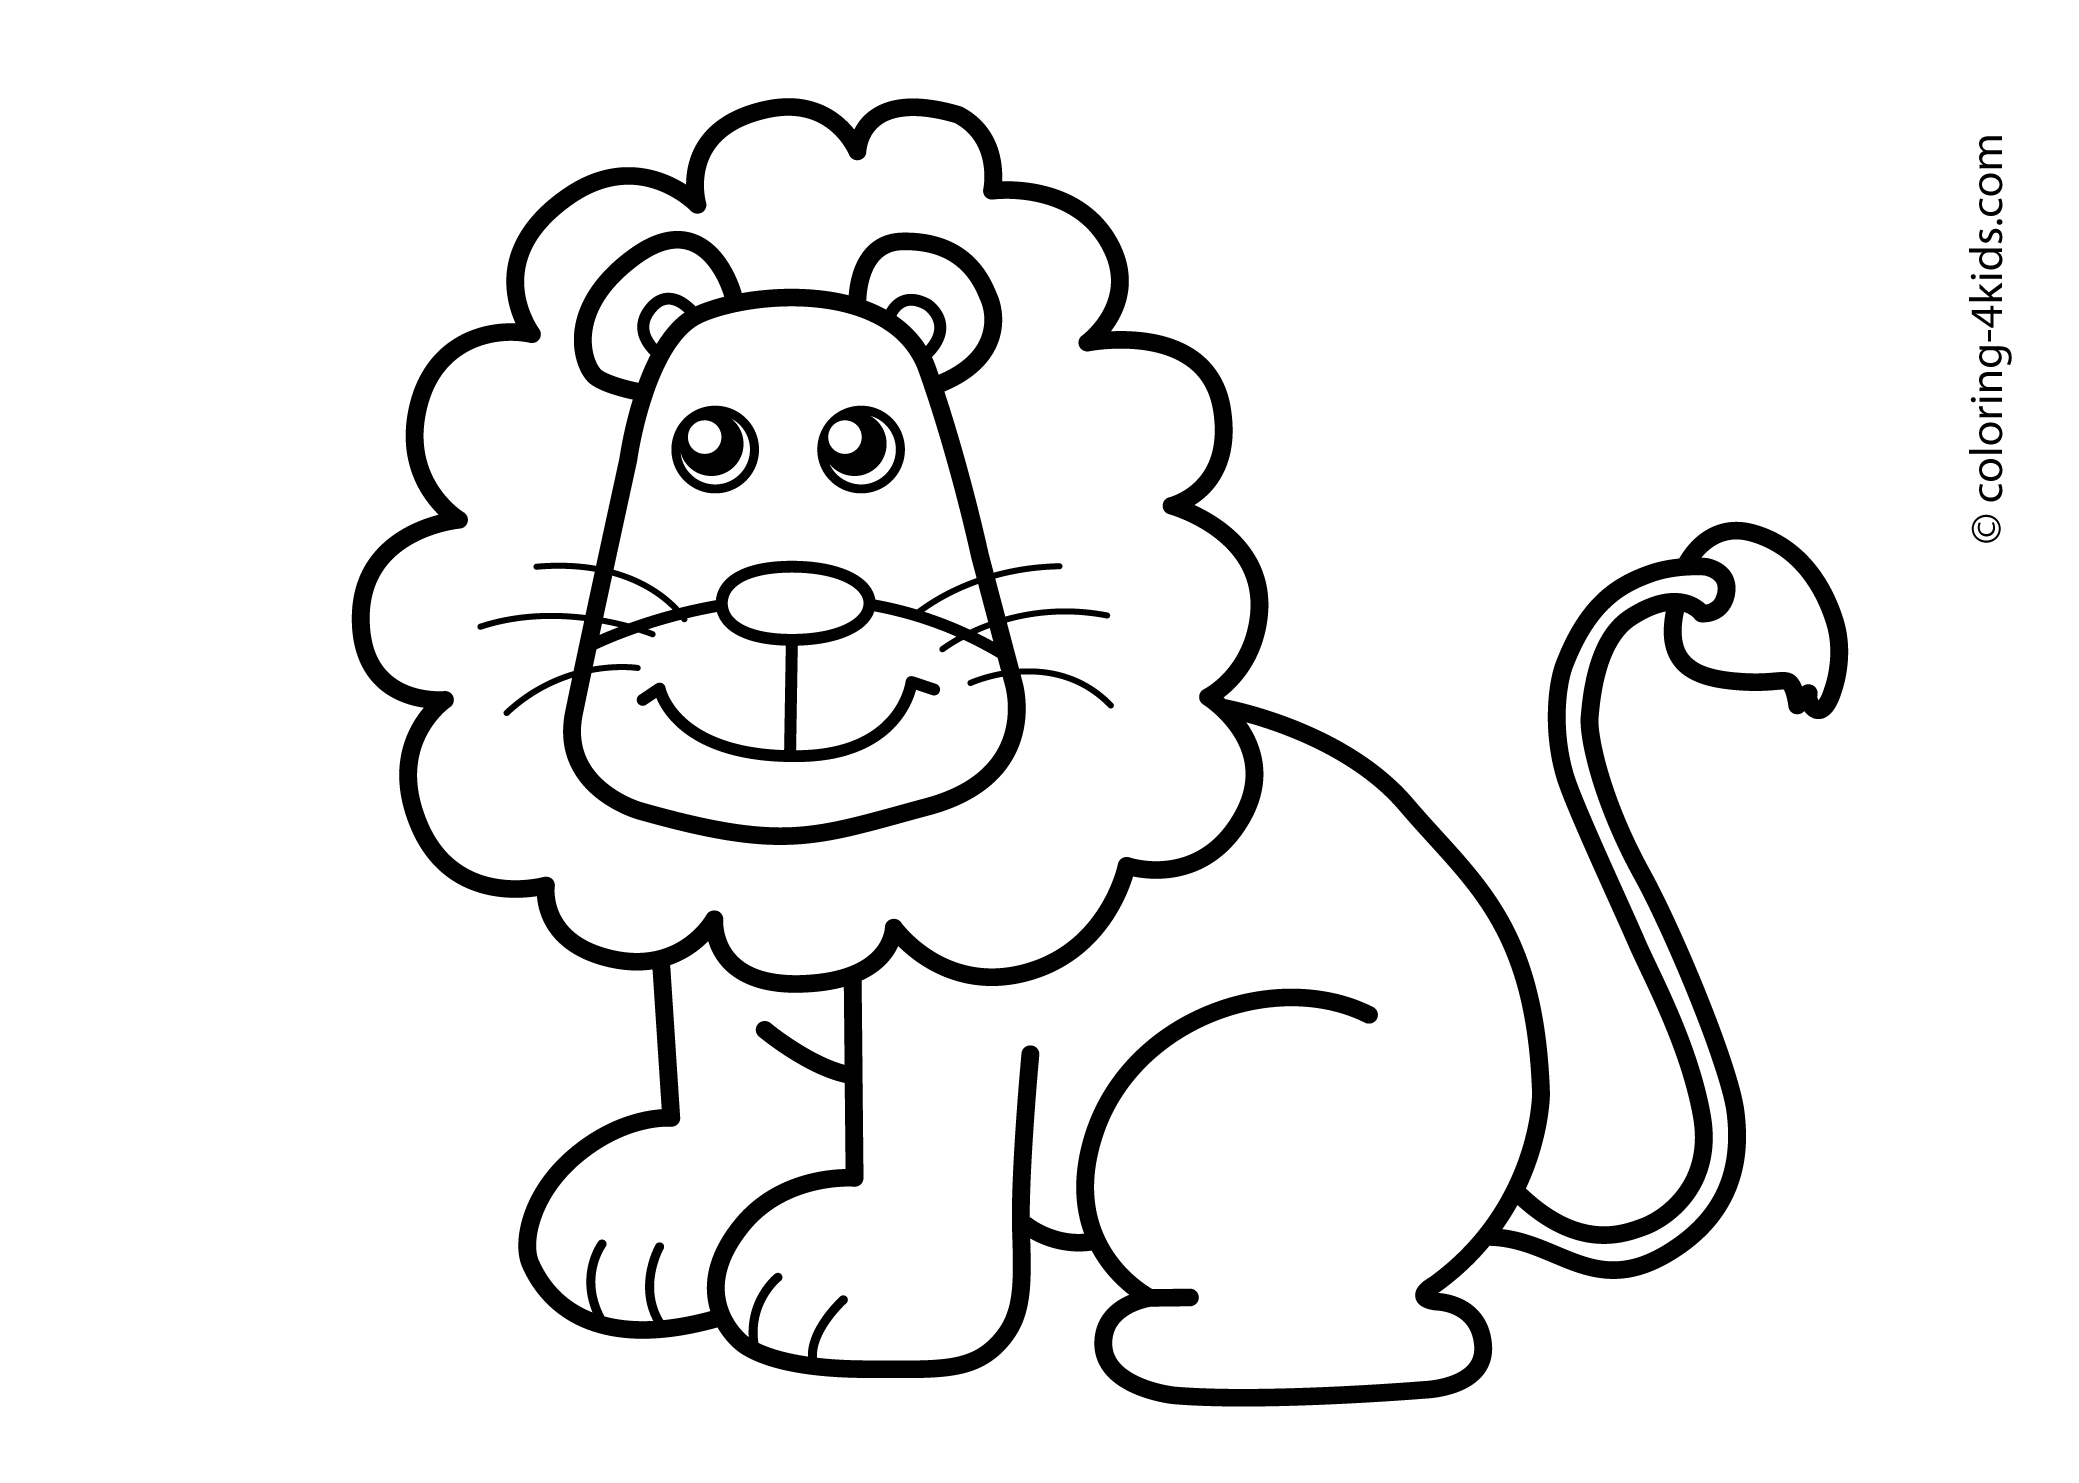 jasmine coloring pages - color drawing for children coloring pages kids animal drawing animals drawings lightofunity